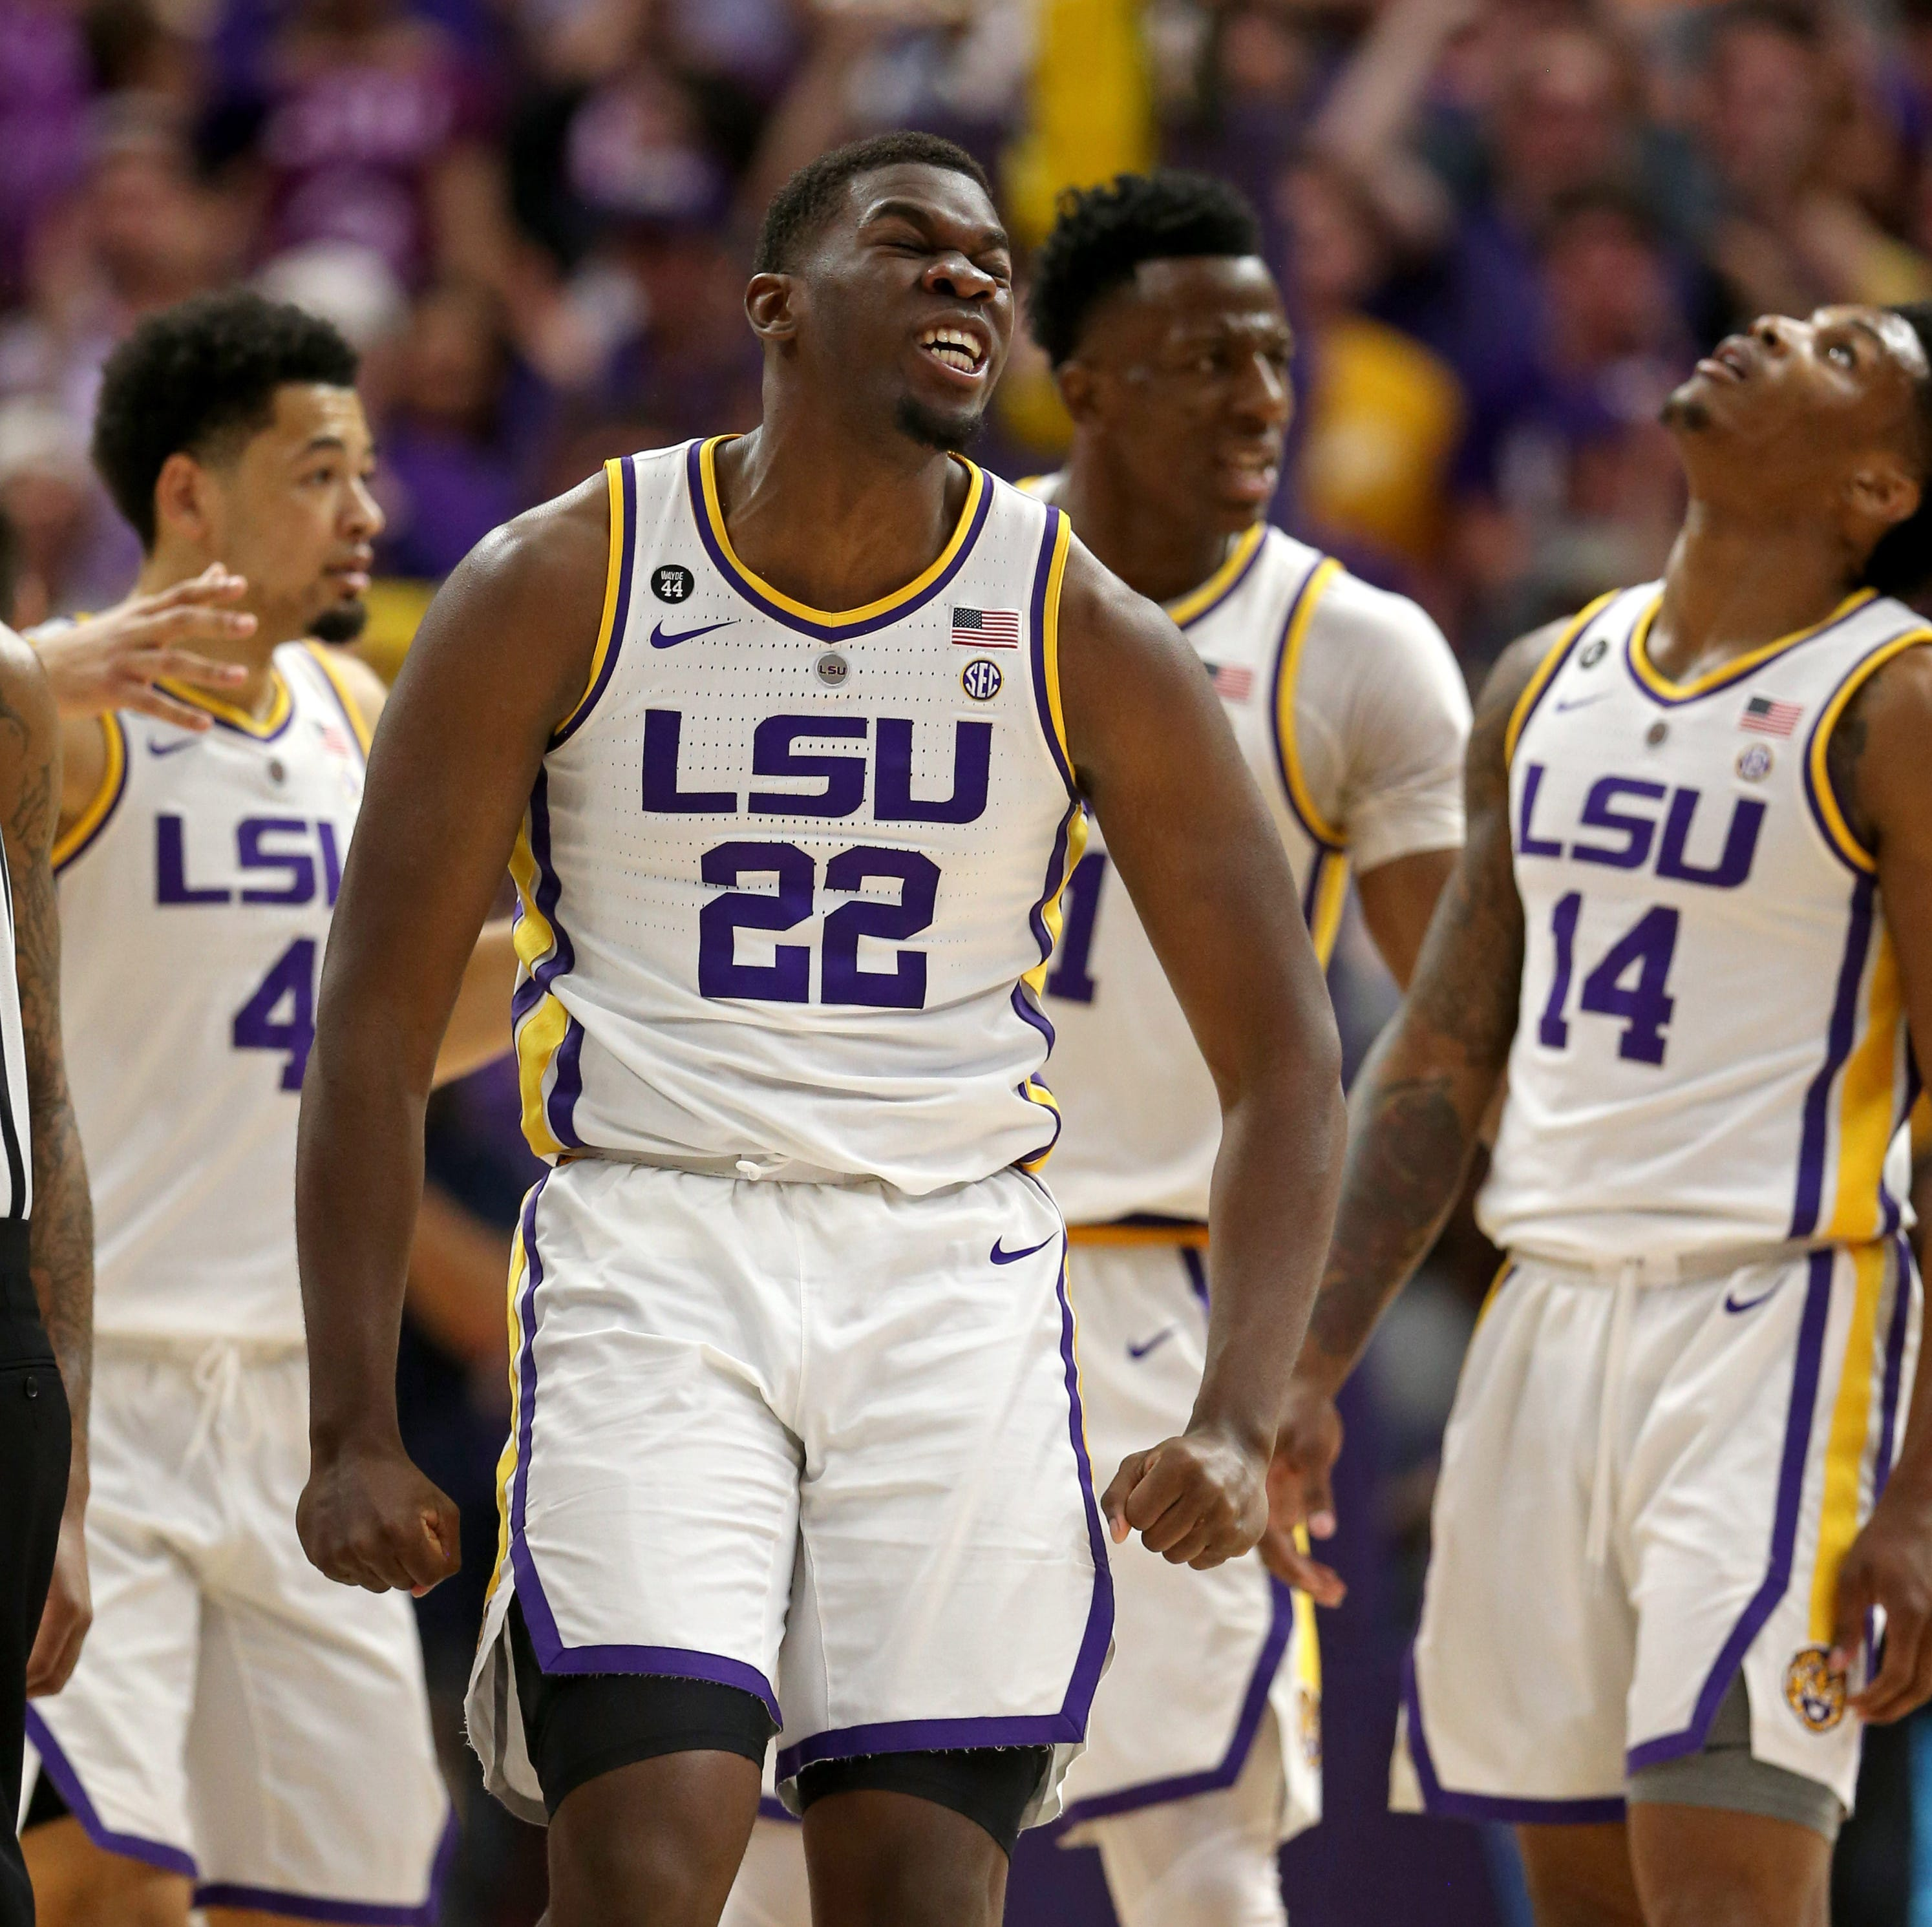 'Definitely going to get vicious,' Tremont Waters said of LSU's 'welcome' at SEC Tourney